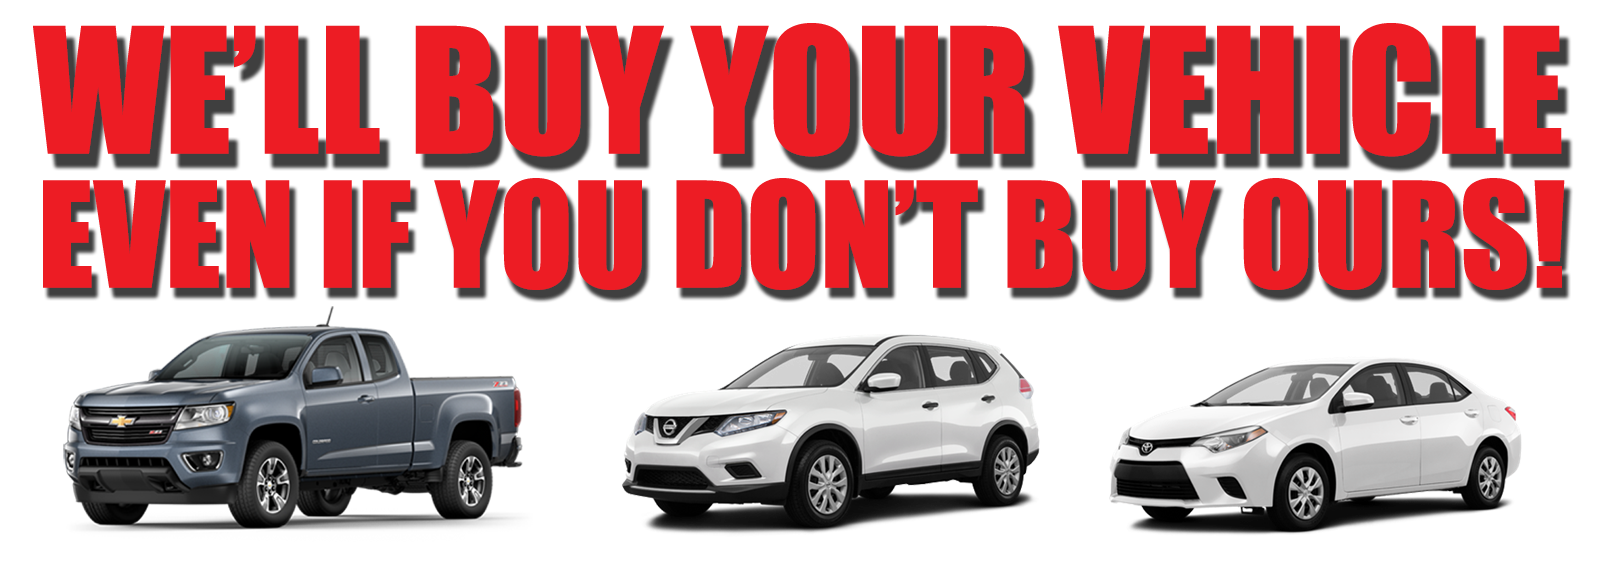 We'll Buy Your Vehicle Even if you don't buy ours!